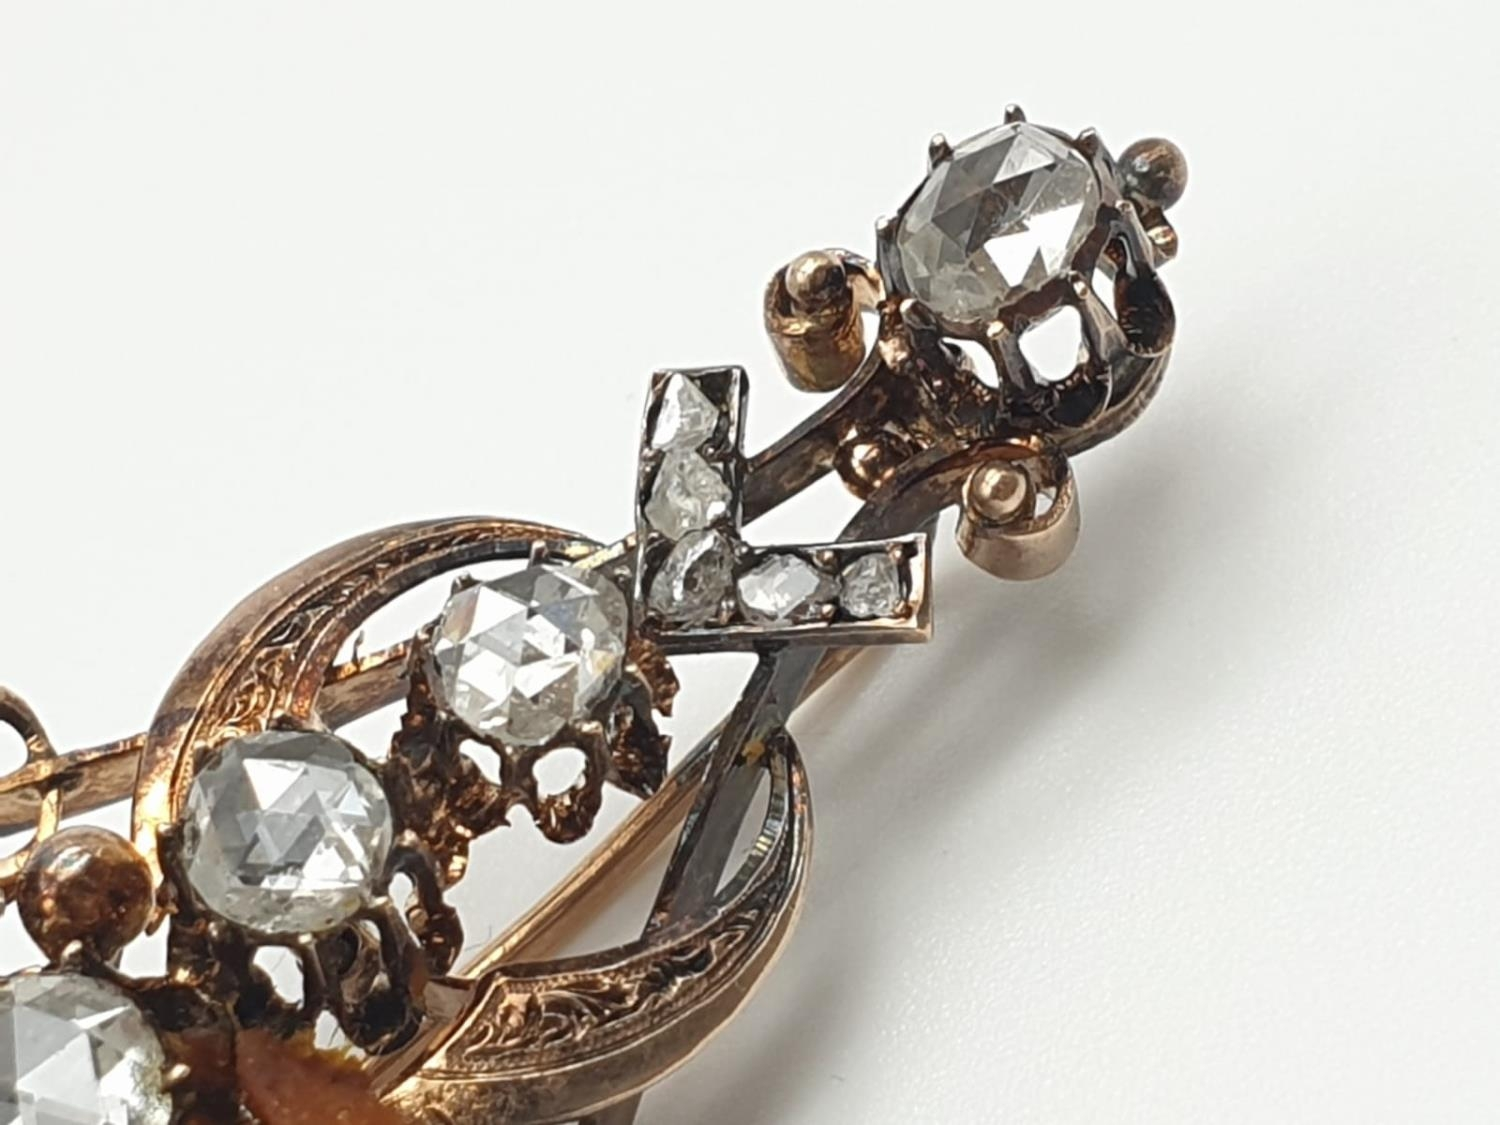 Impressive Antique Edwardian rose gold brooch with over 3ct of rose diamonds, weight 9.1g and 7cm - Image 3 of 5